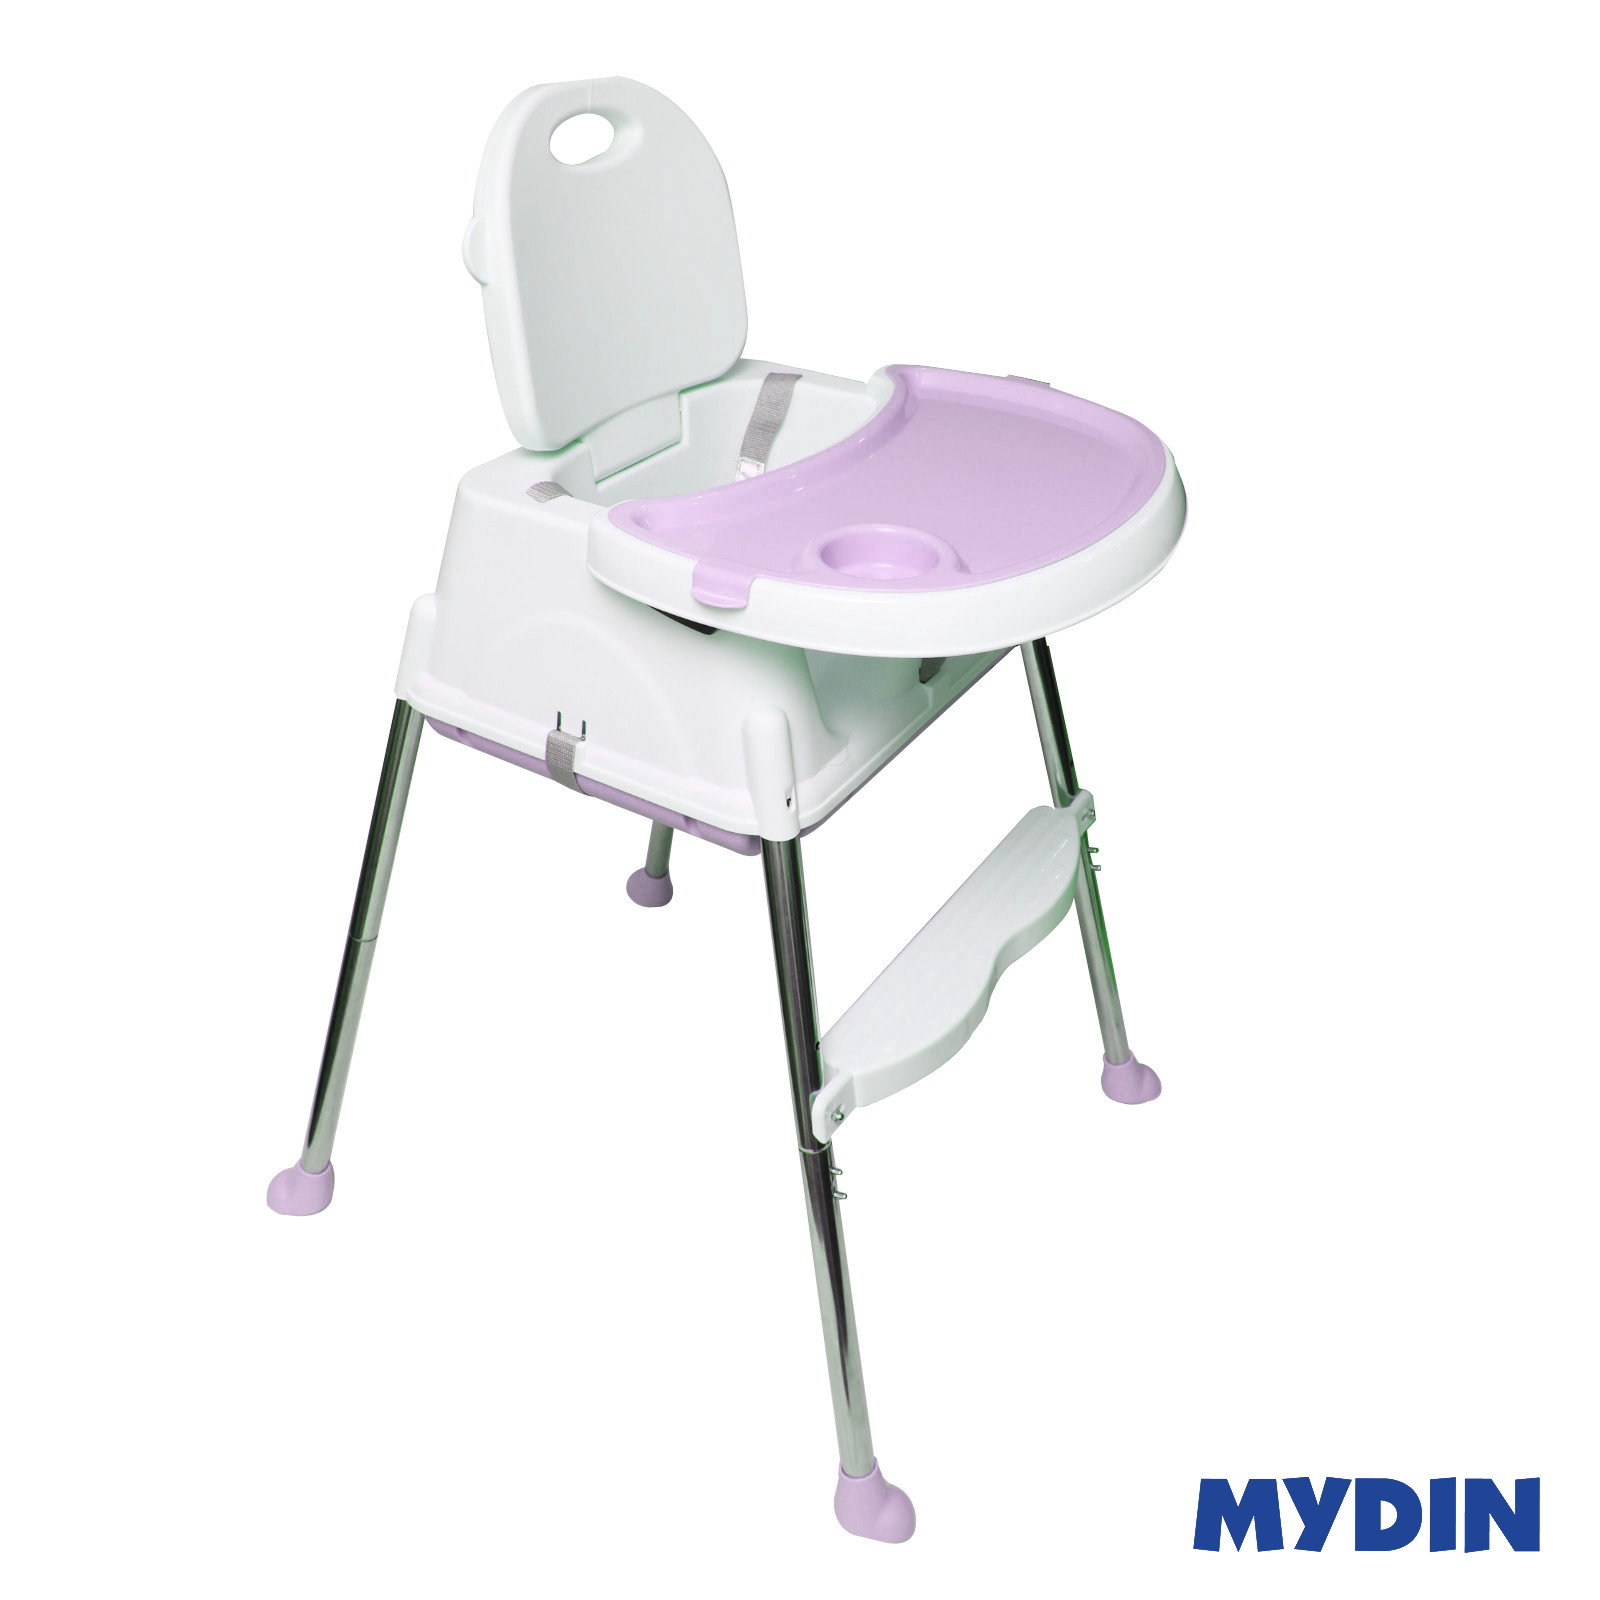 MYBB Portable Multi Function Foldable Baby Feeding Dining ChairPink 0820YW-HE01B